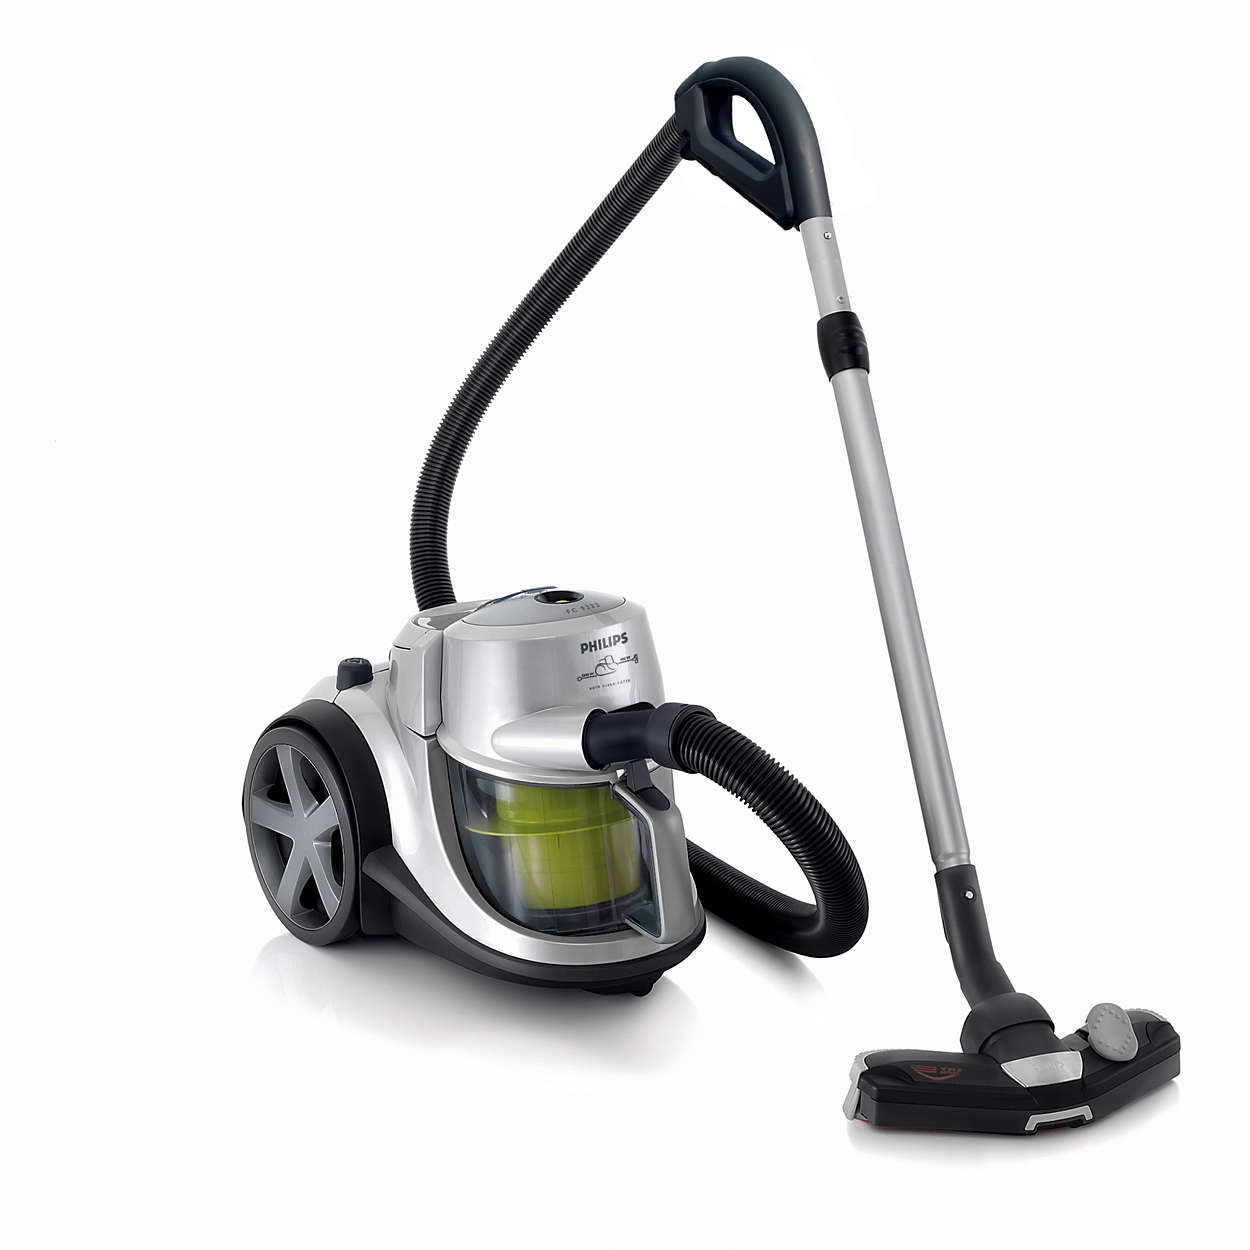 Marathon aspirateur sans sac fc9222 01 philips - Aspirateur de table philips ...